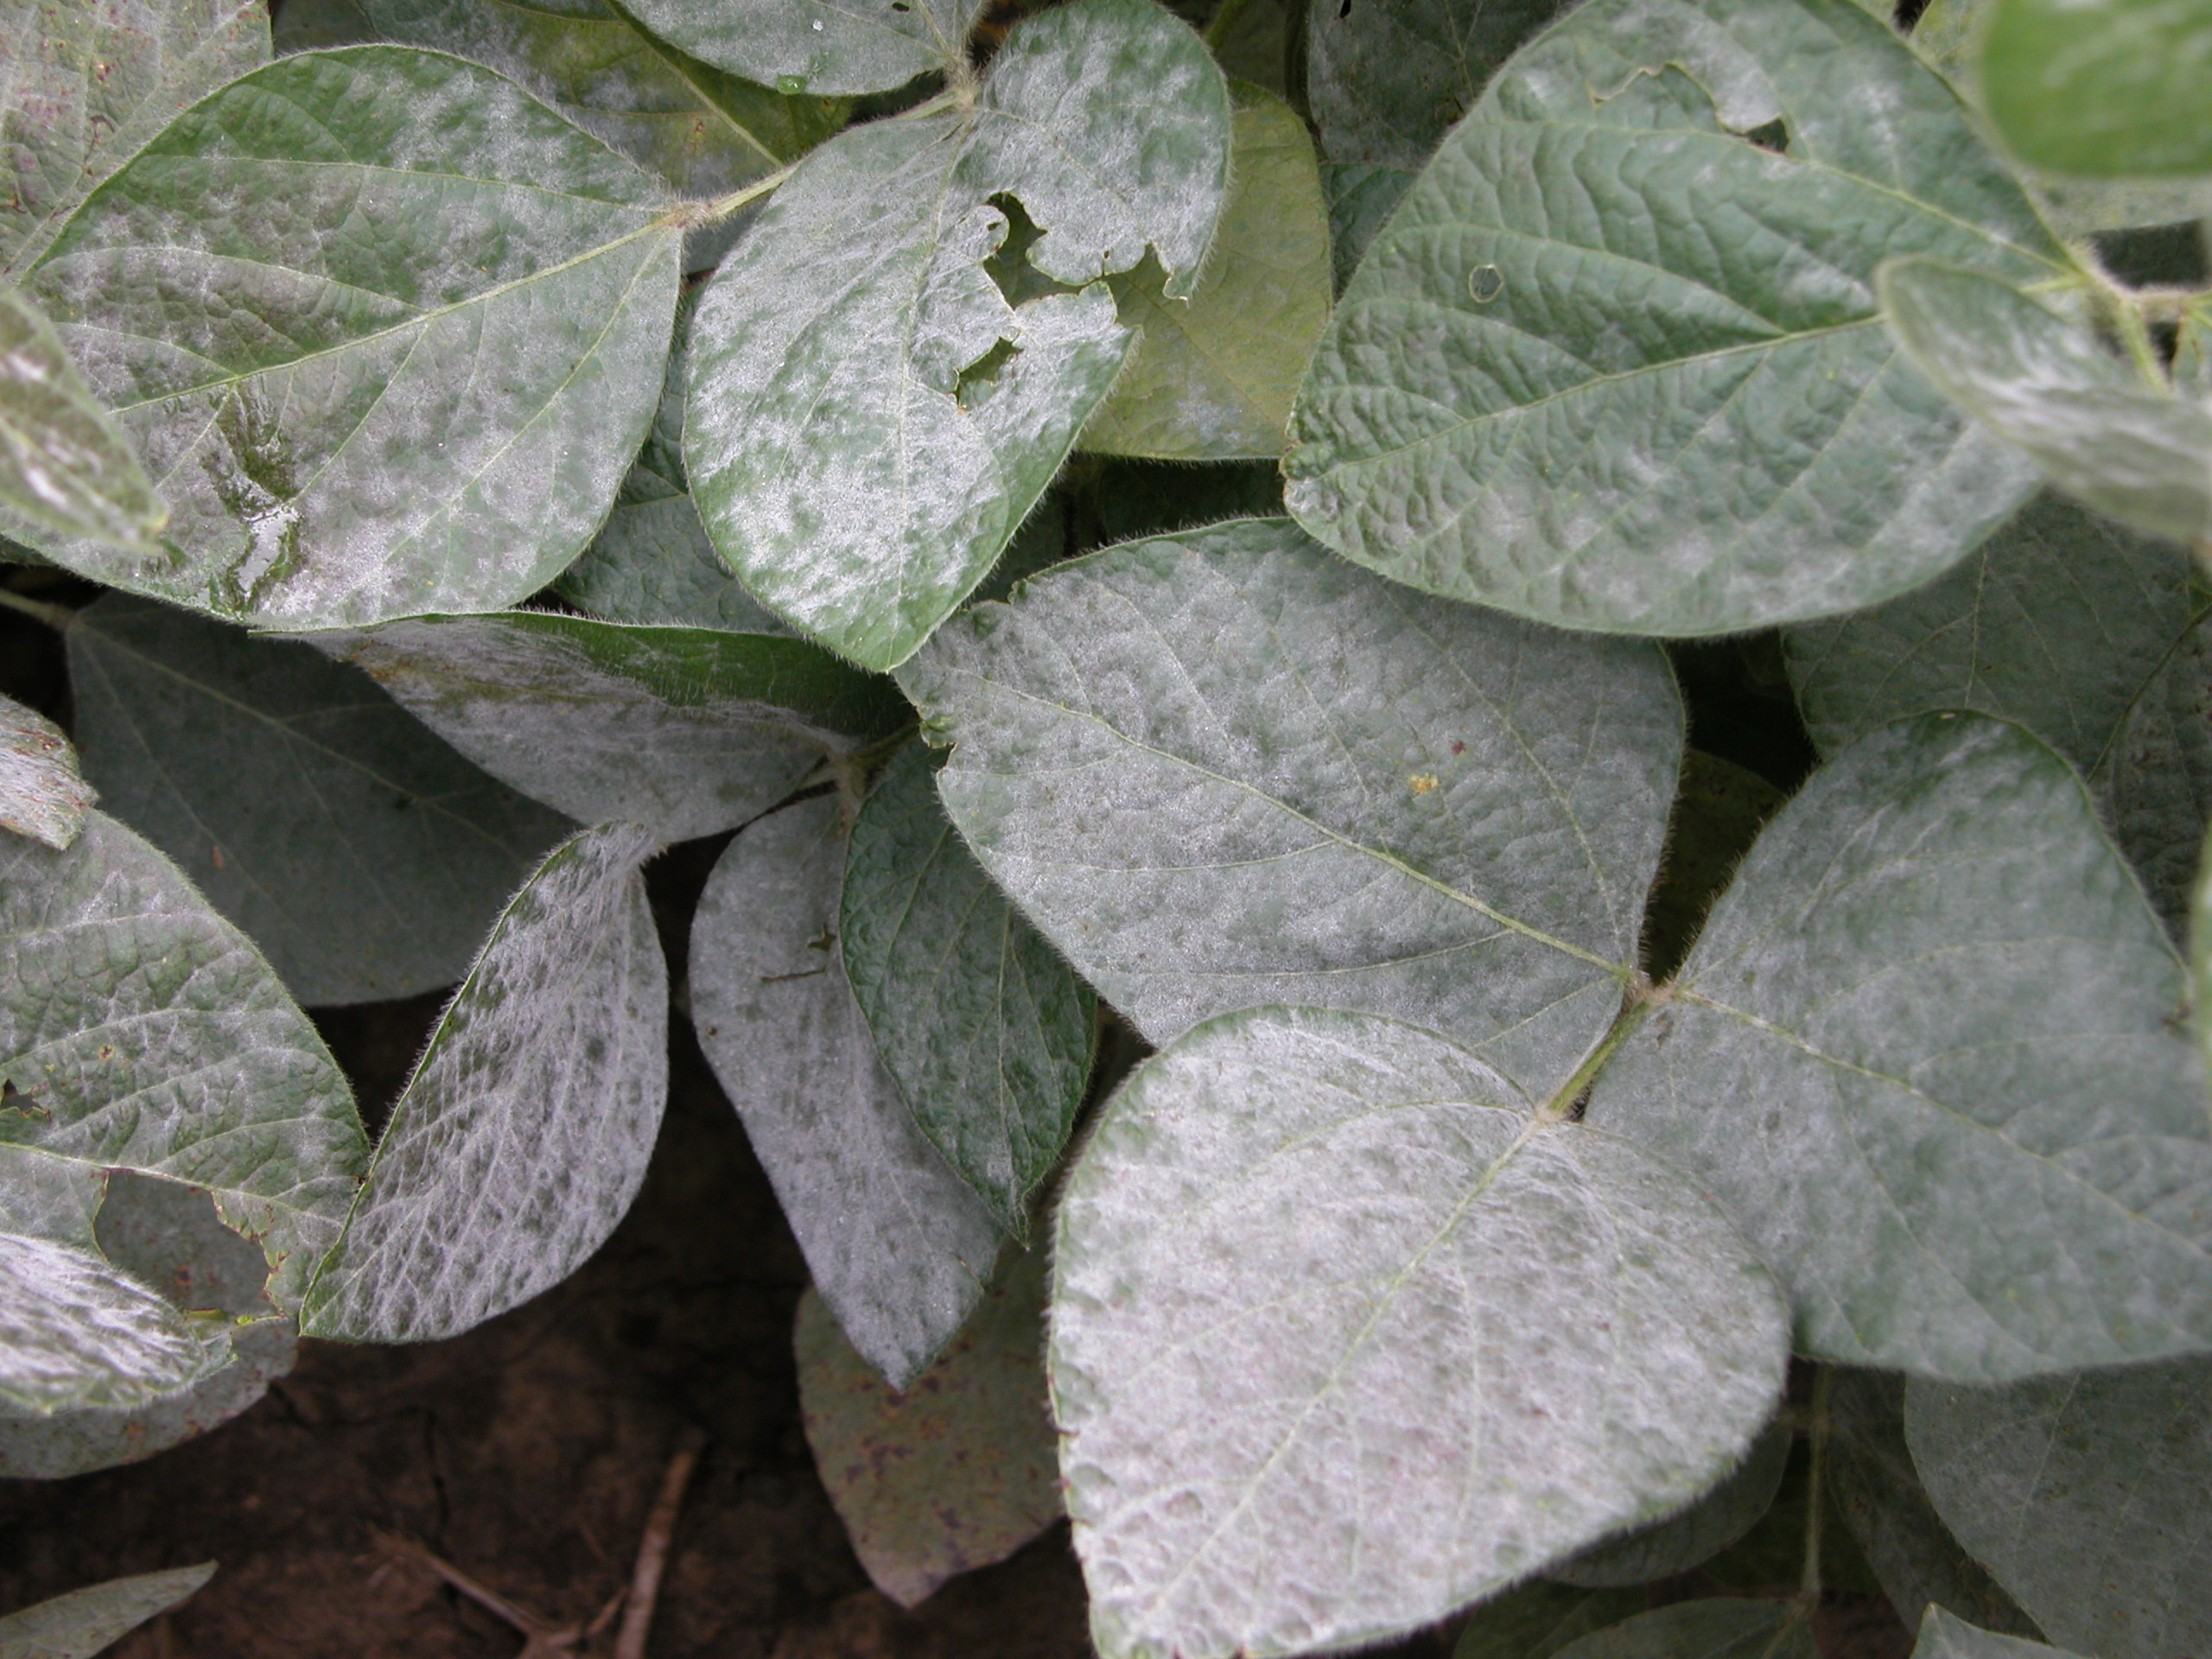 Severe powdery mildew signs covering soybean leaves.